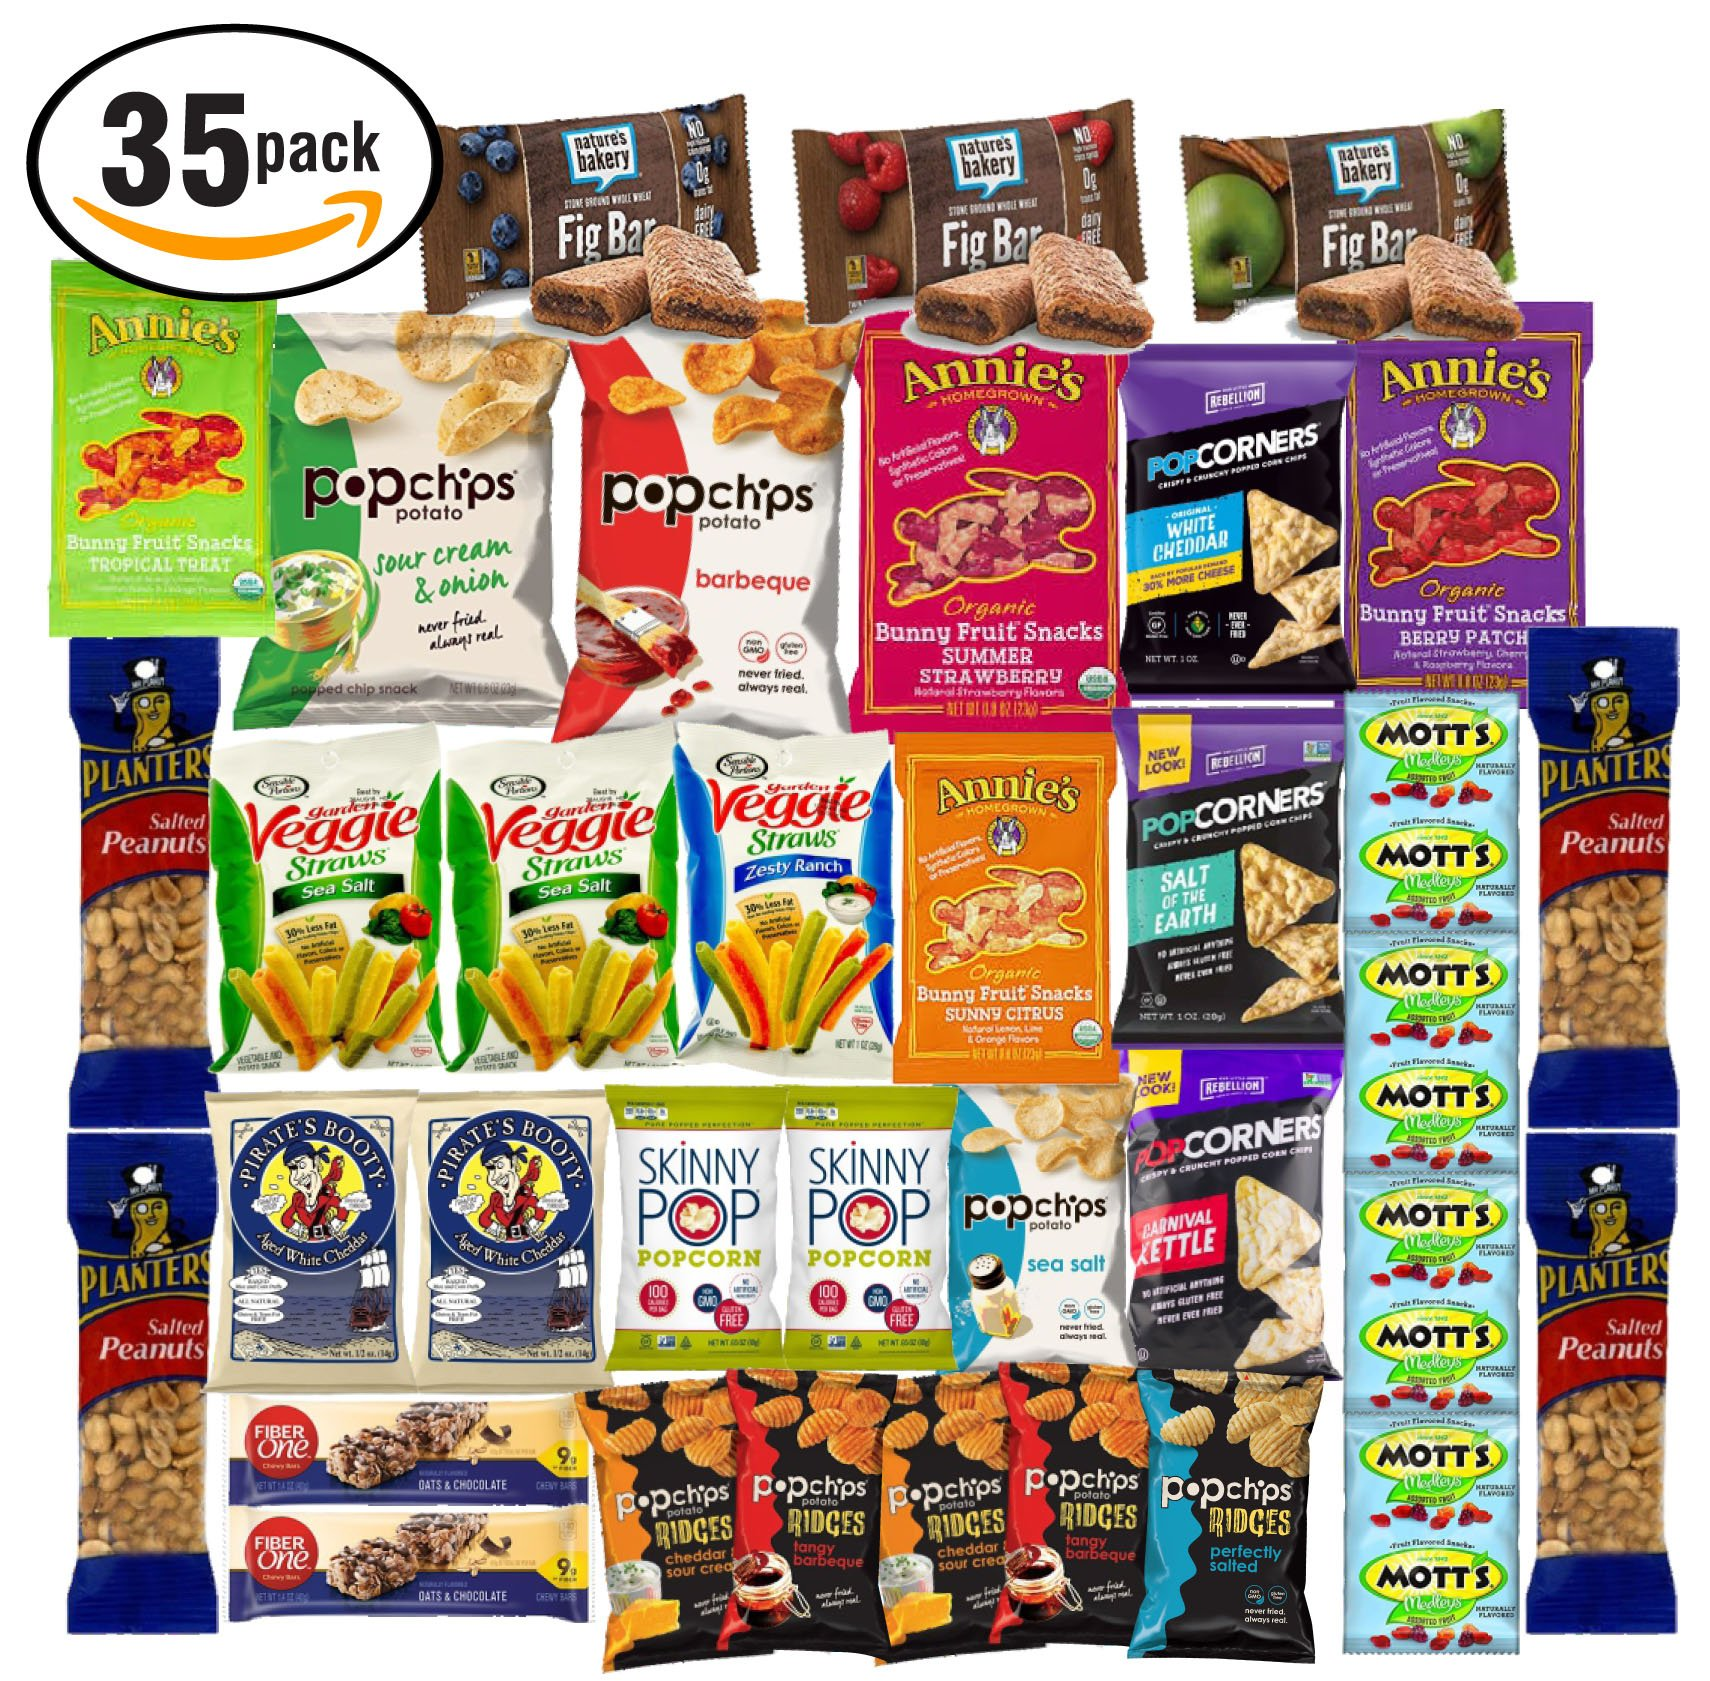 Healthy Snacks and Bars Variety Pack Gift Snack Box - Pack Assortment (Care Package 35 Count)